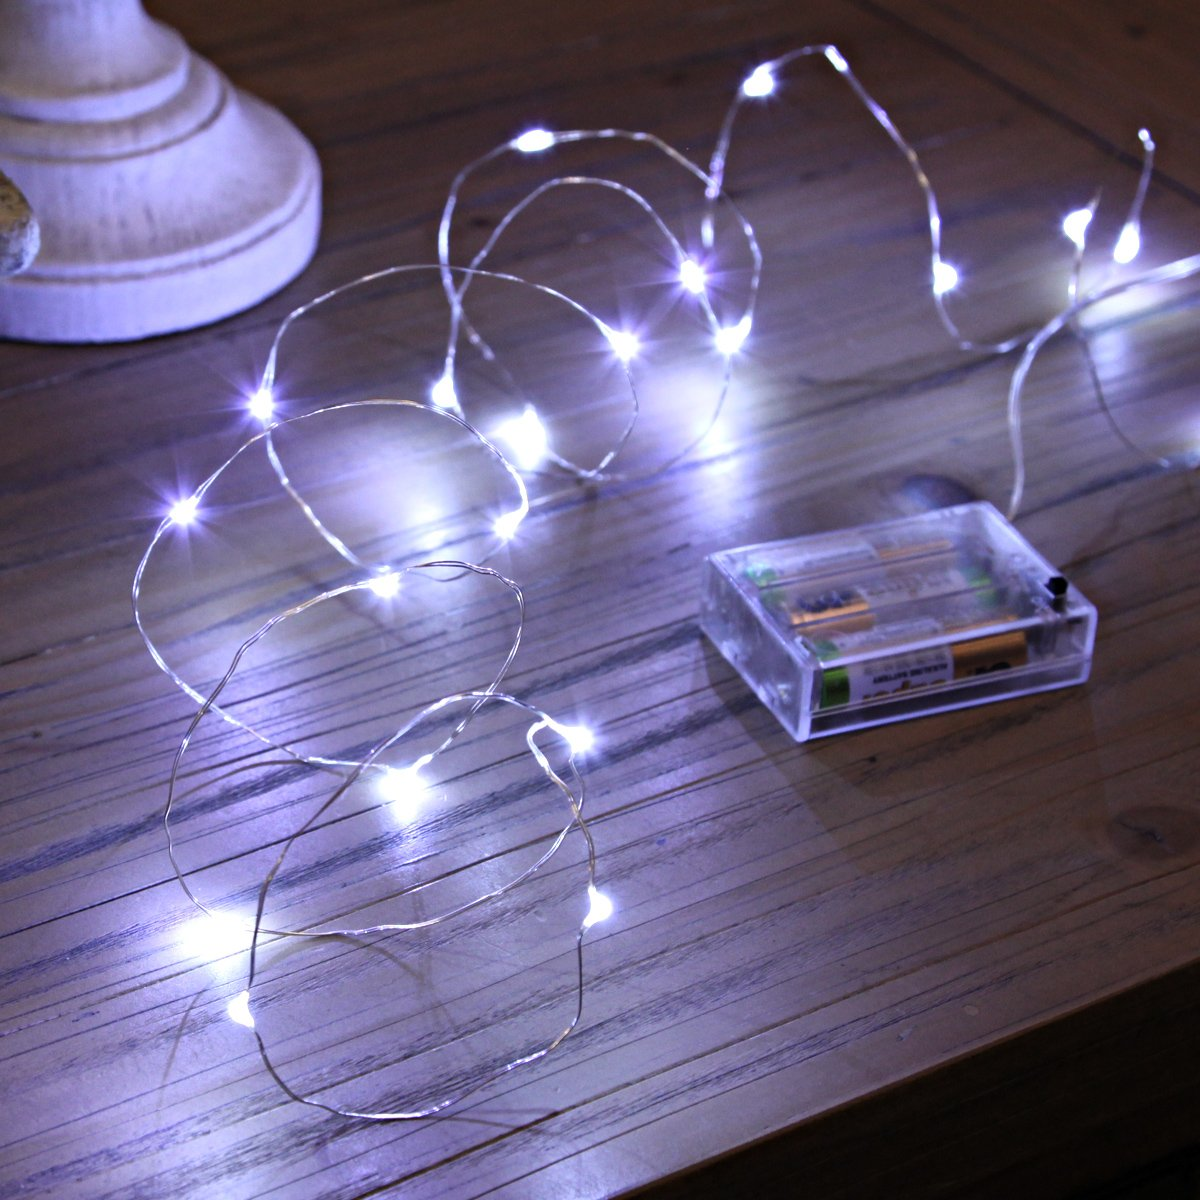 Festive Lights 20 Led Micro Silver Wire Indoor Battery Operated Wiring A Gas Lamp Firefly String Warm White Metal 2m Kitchen Home